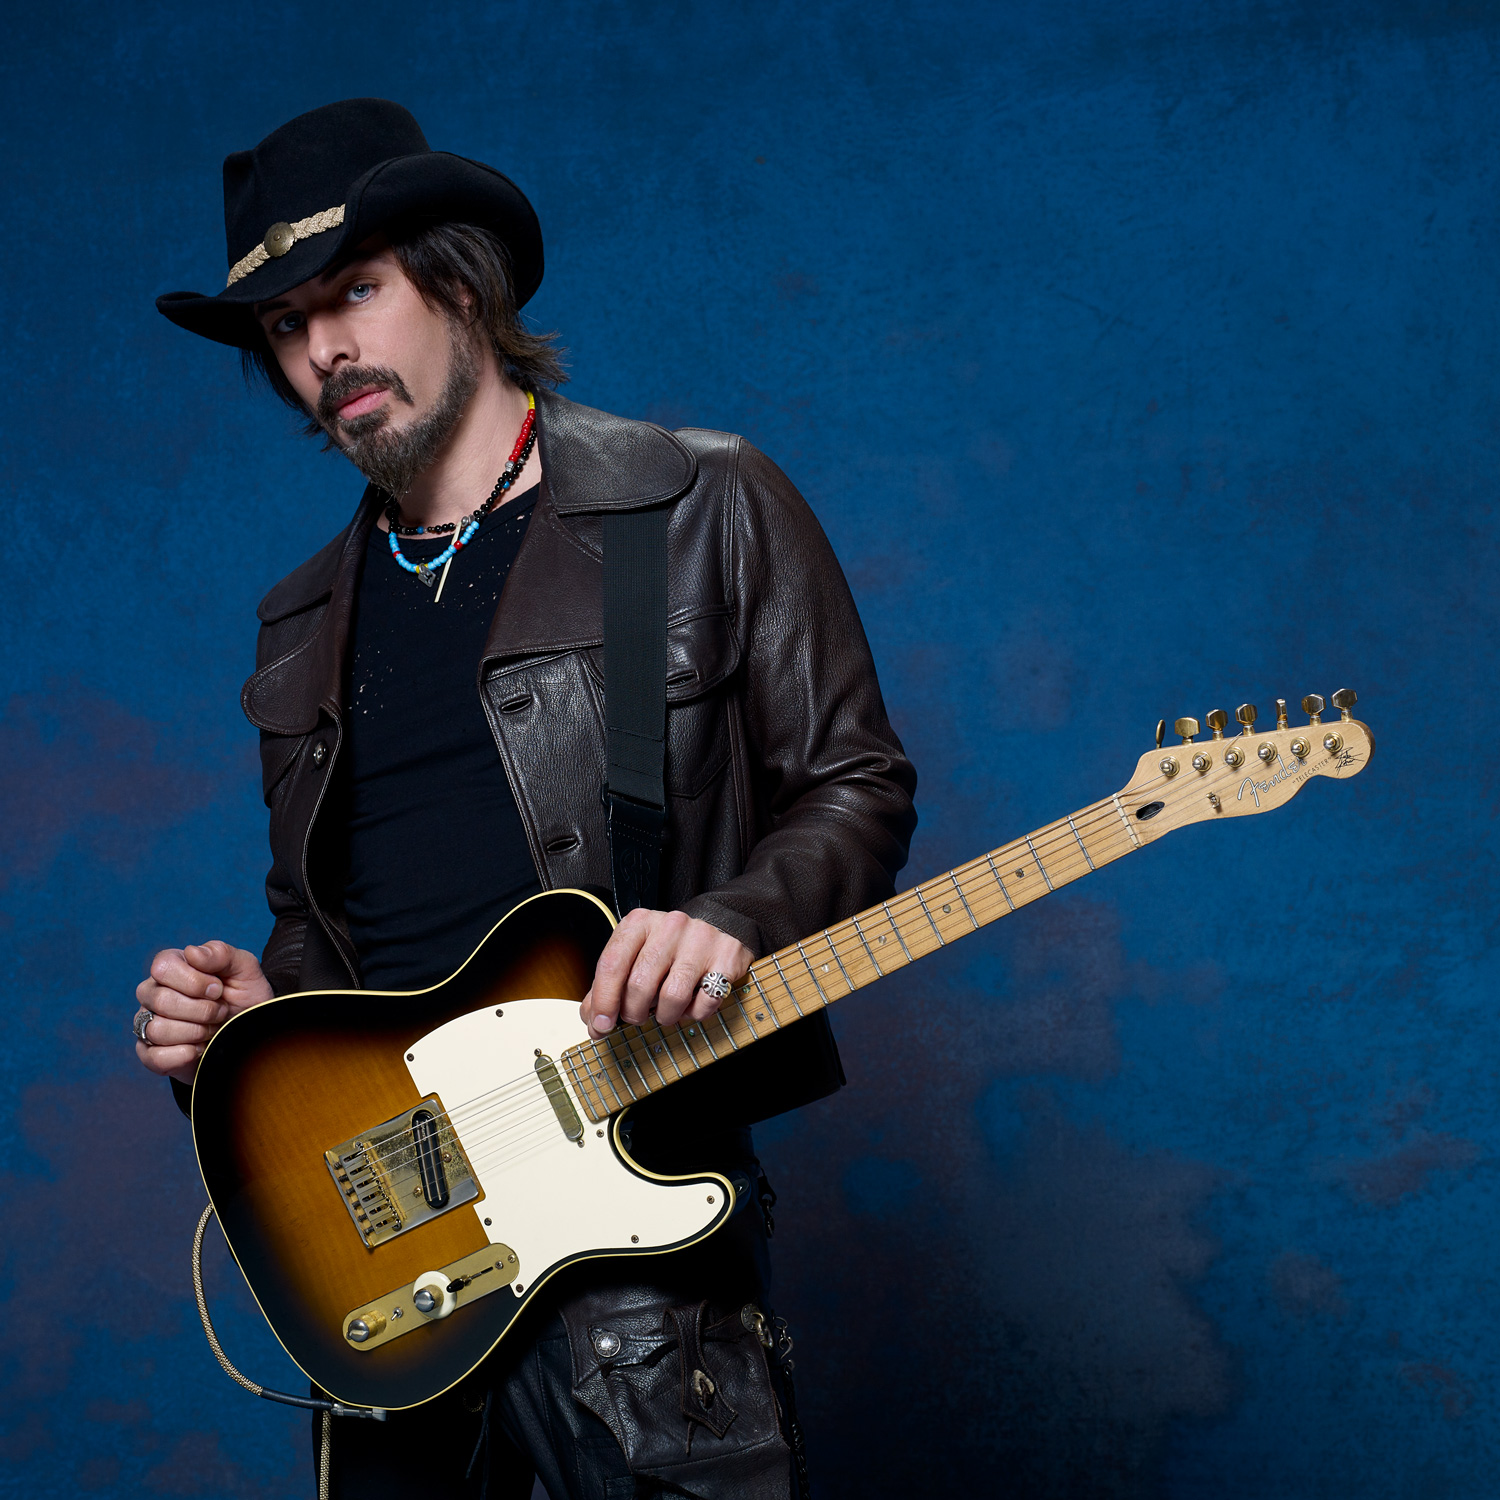 Richie Kotzen photo by Larry DiMarzio